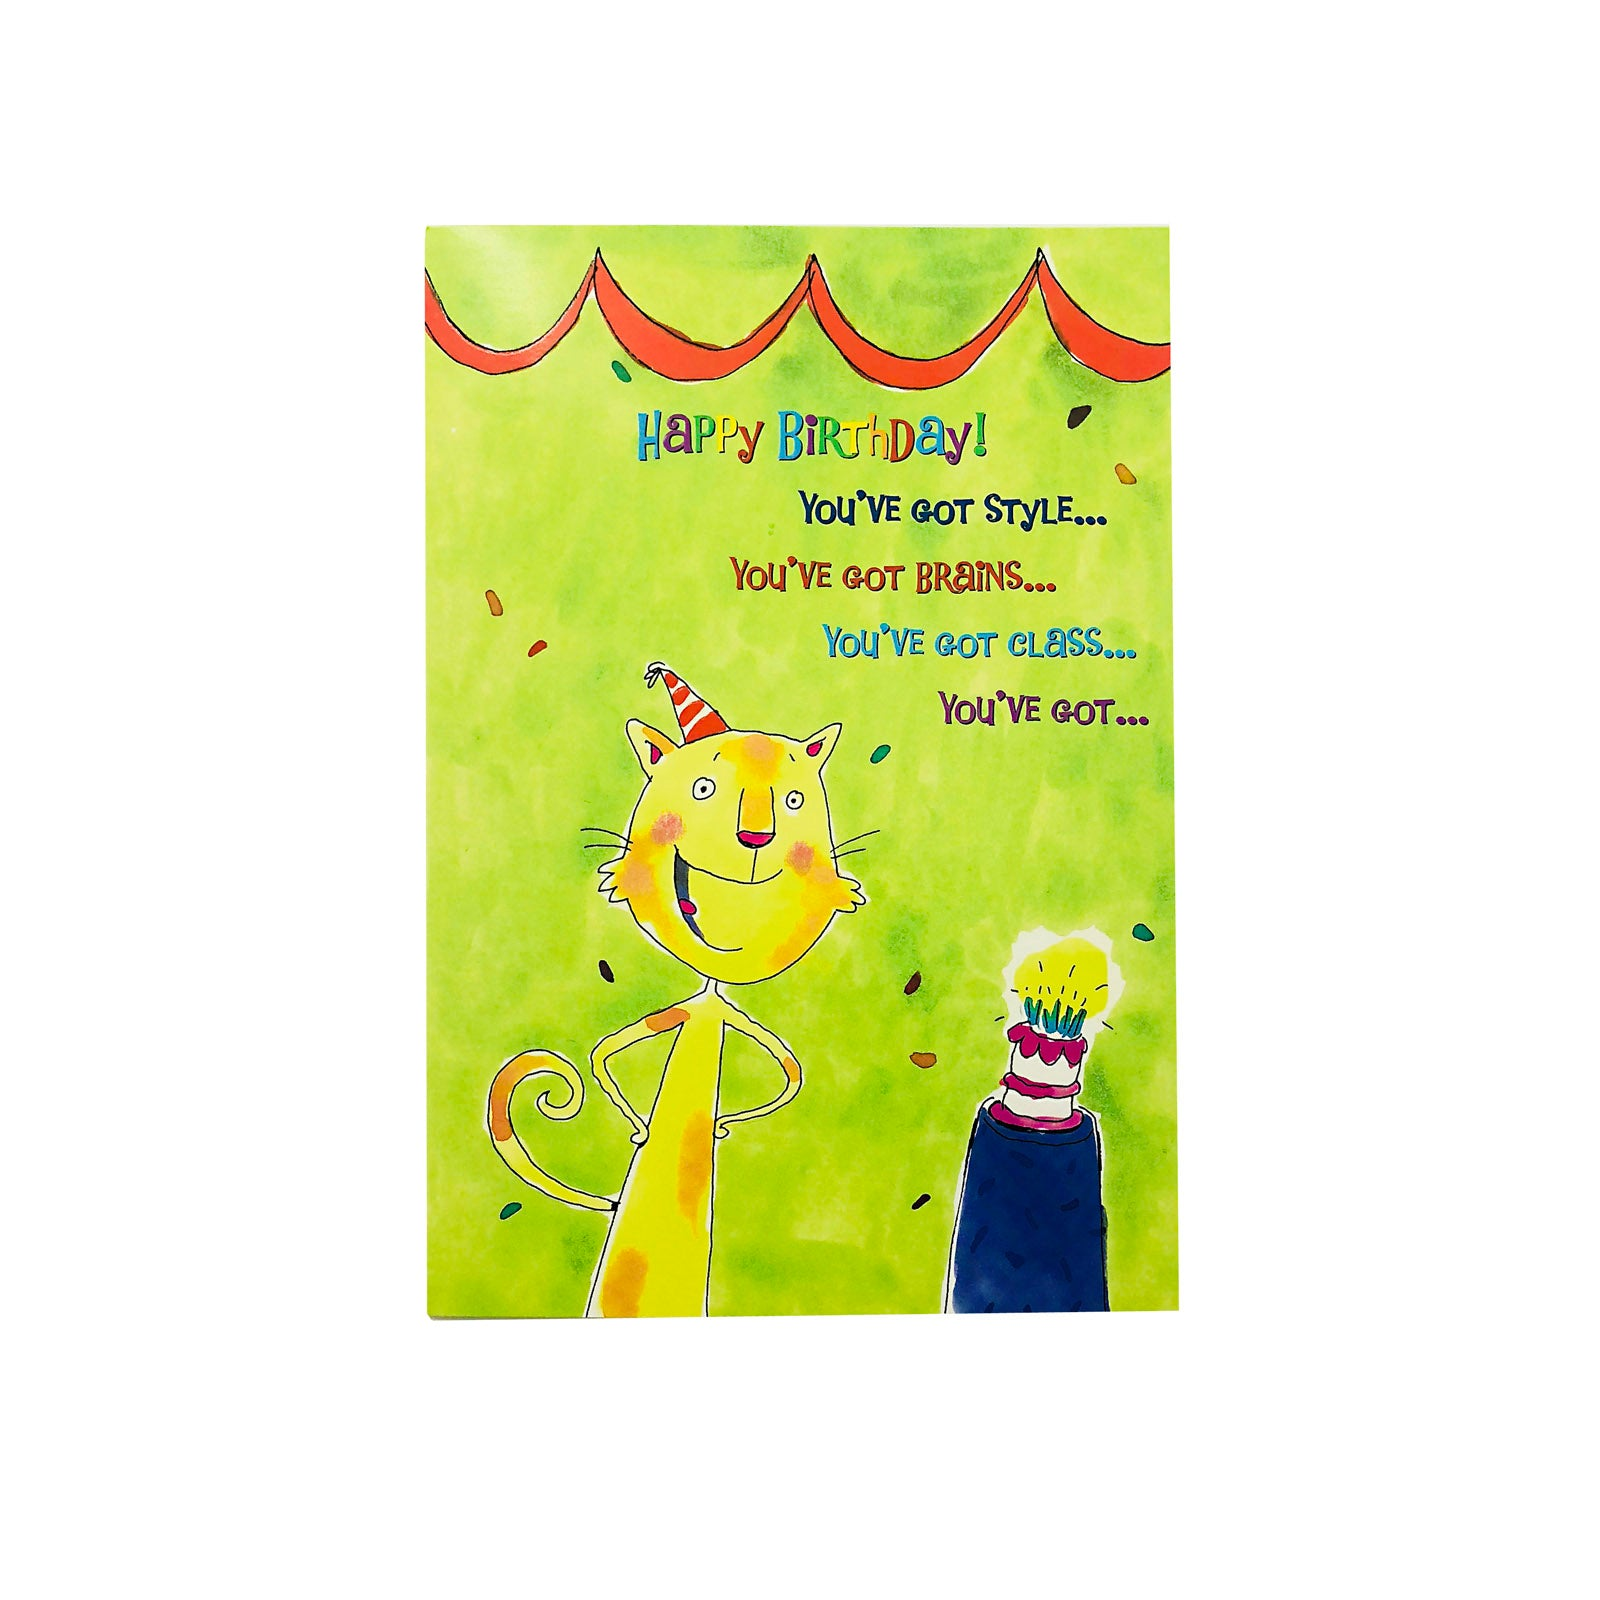 Designer Greetings Birthday Card - You've Got Style - Cat